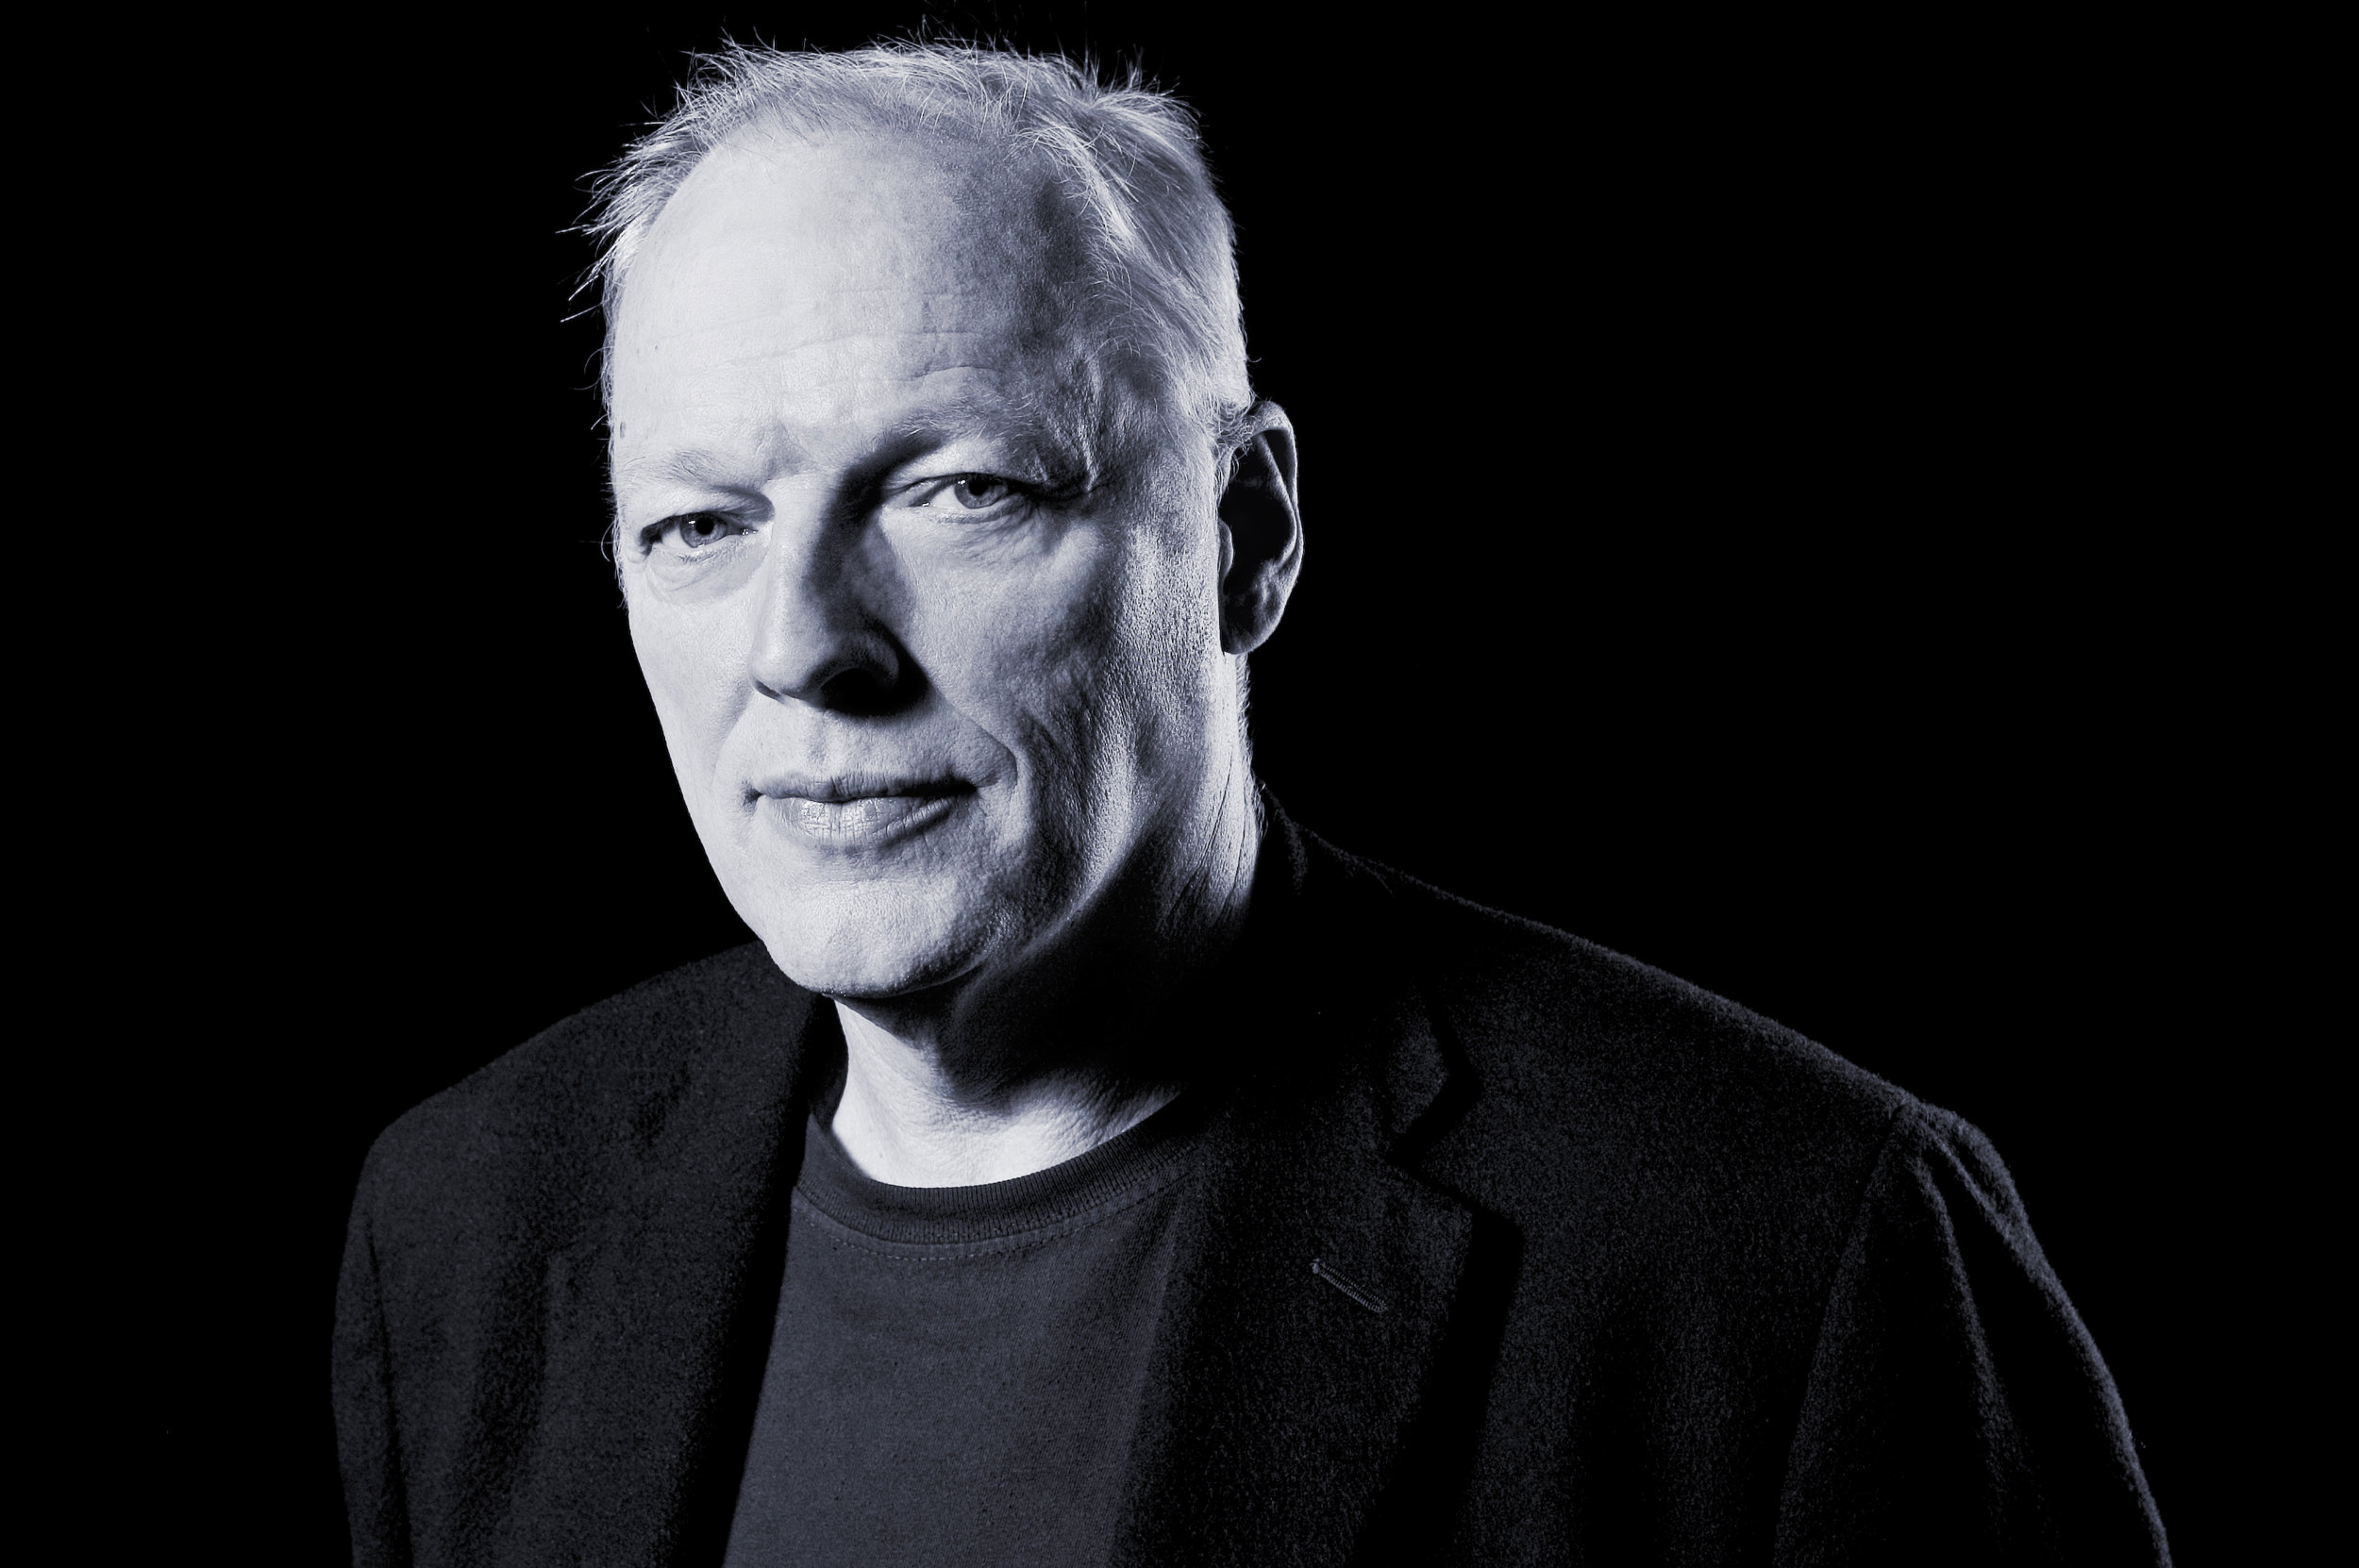 David Gilmour (Pink Floyd), New York City, 2006.